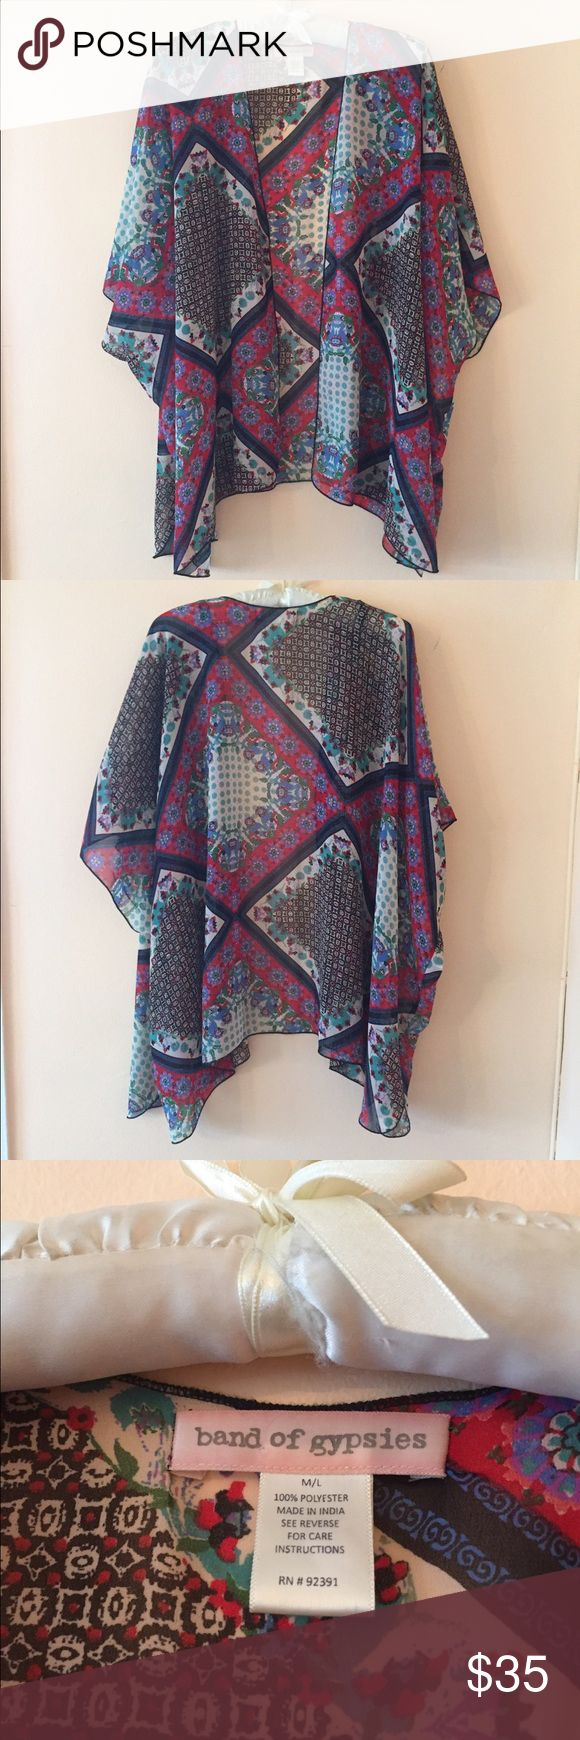 NWOT Band of Gypsies Printed Kimono Top Large Beautiful, perfect condition, no flaws, NWOT kimono Wrap Cardigan from Band Gypsies, will also fit XL size as it is generously oversized, label shows size M/L Band of Gypsies Swim Coverups